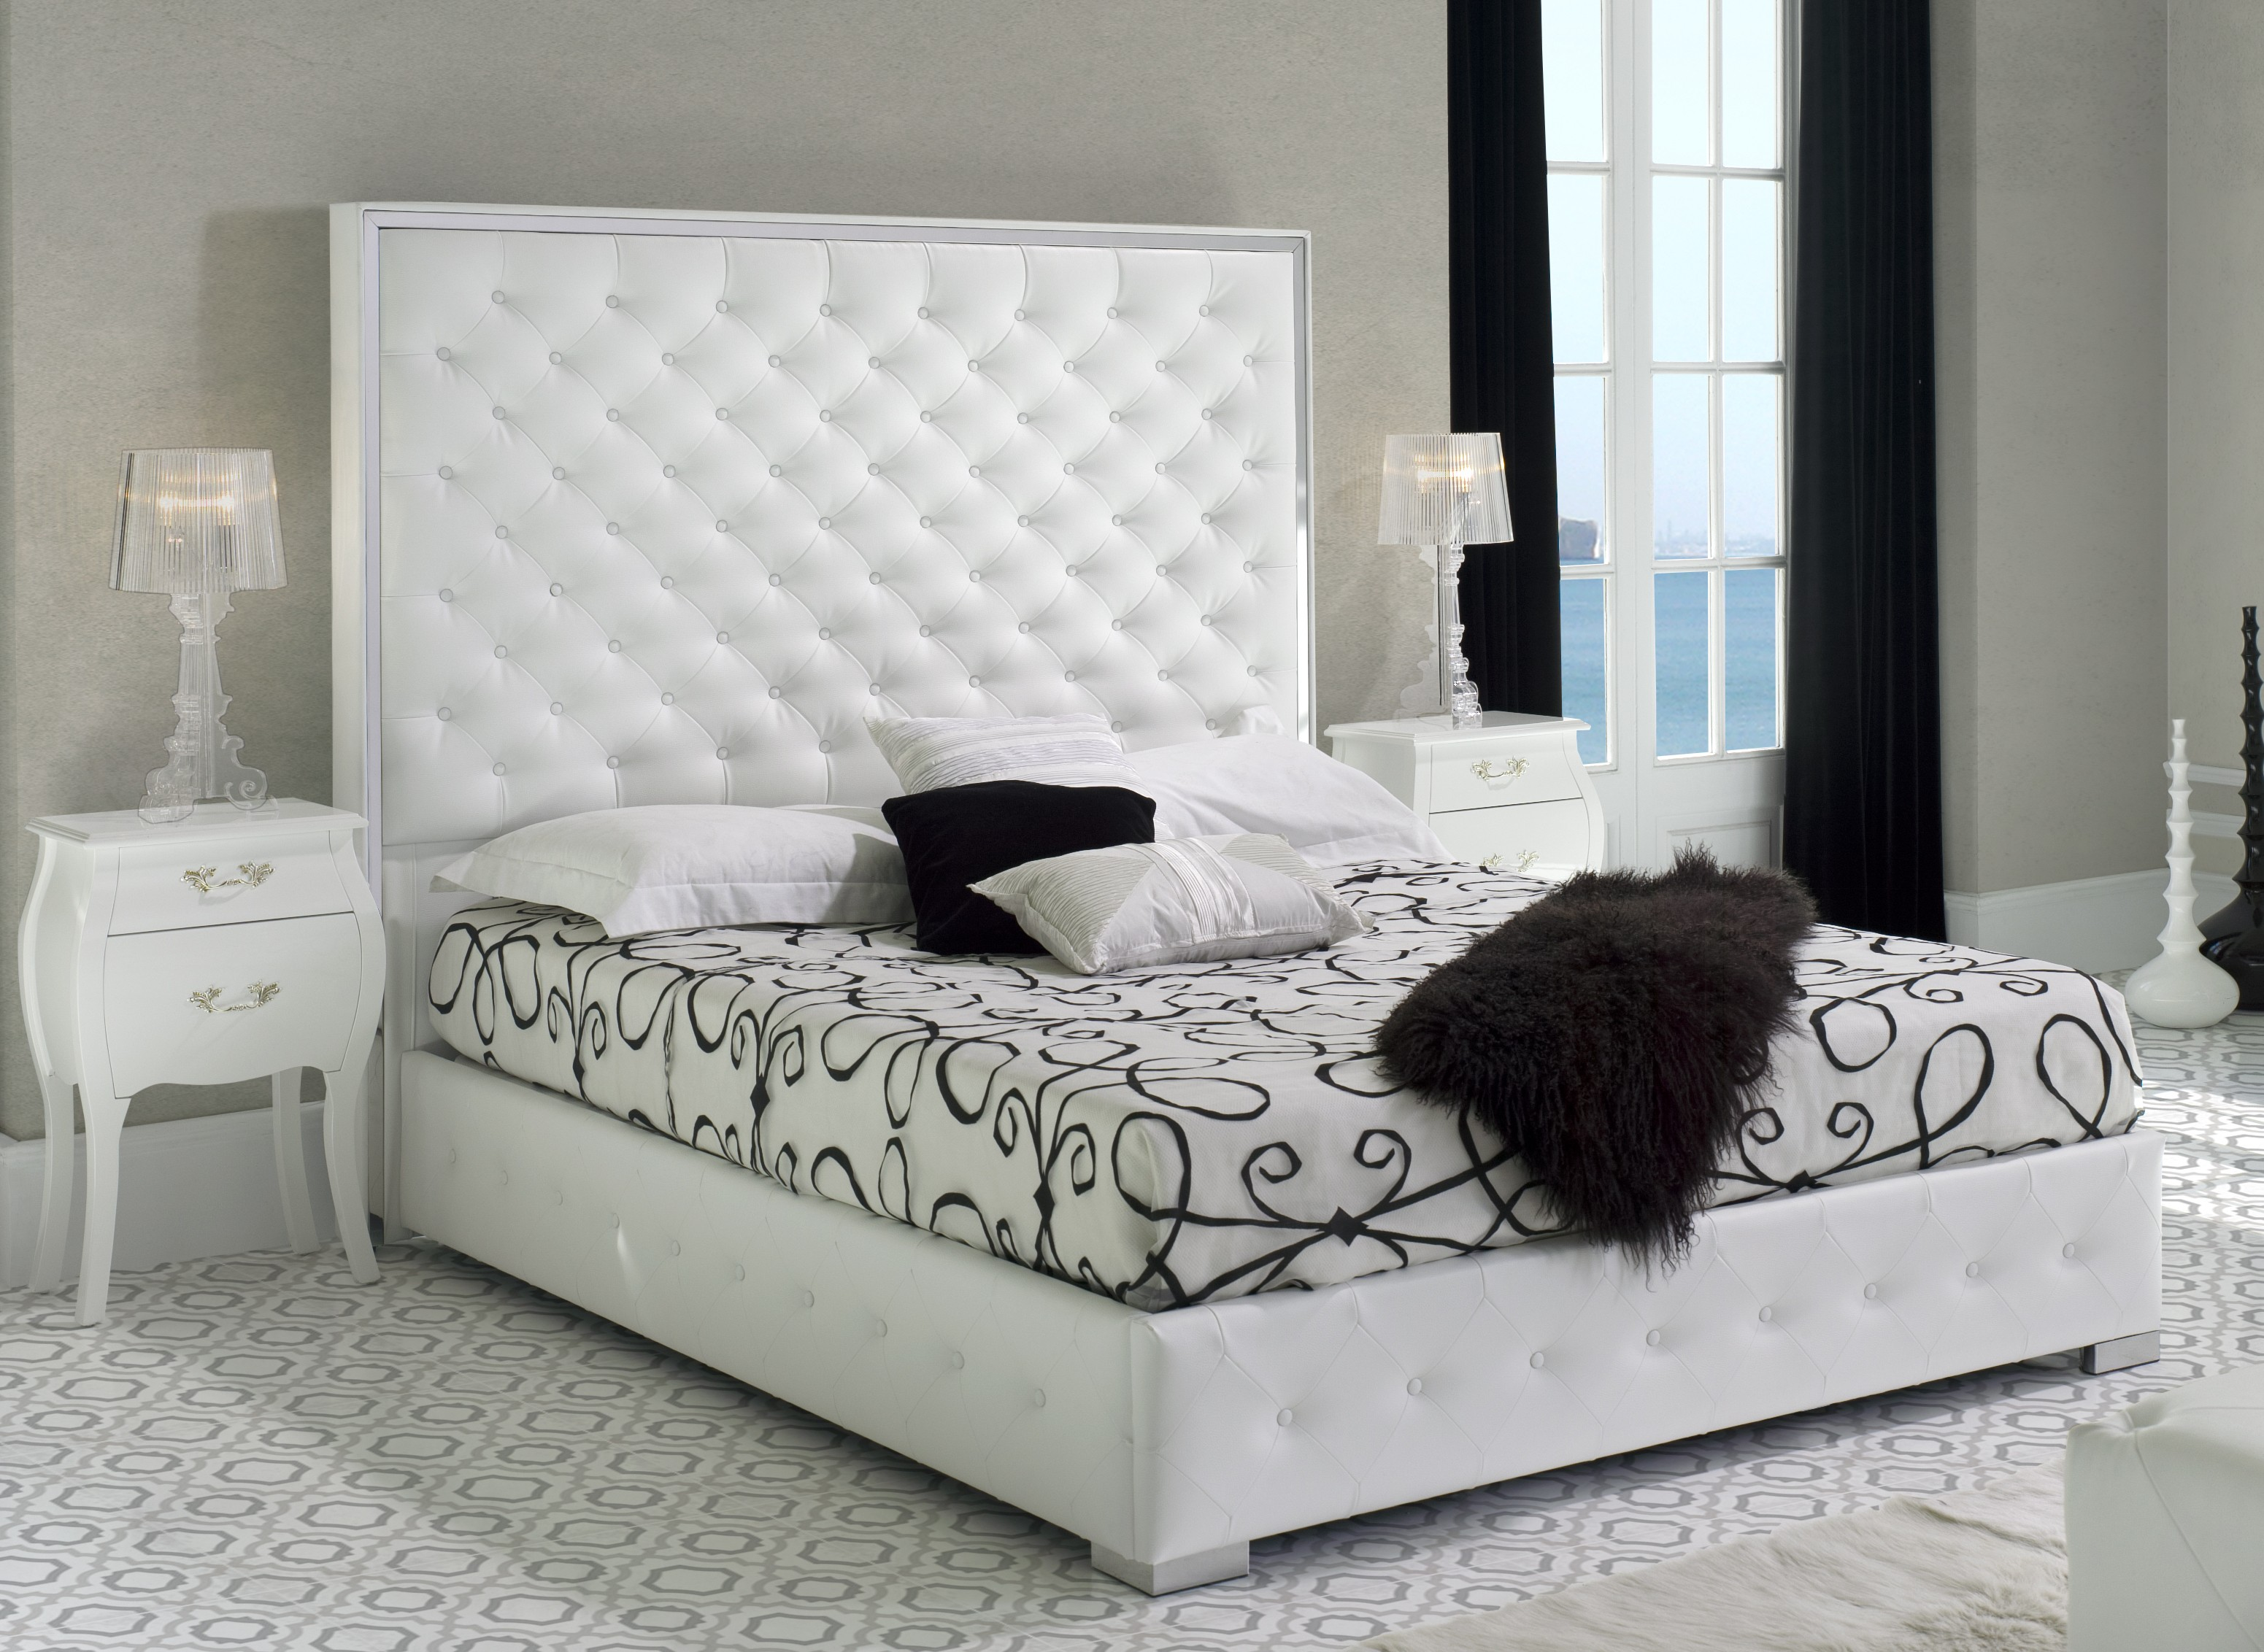 lit king size capitonn simili blanc bony 160 couchage 160. Black Bedroom Furniture Sets. Home Design Ideas